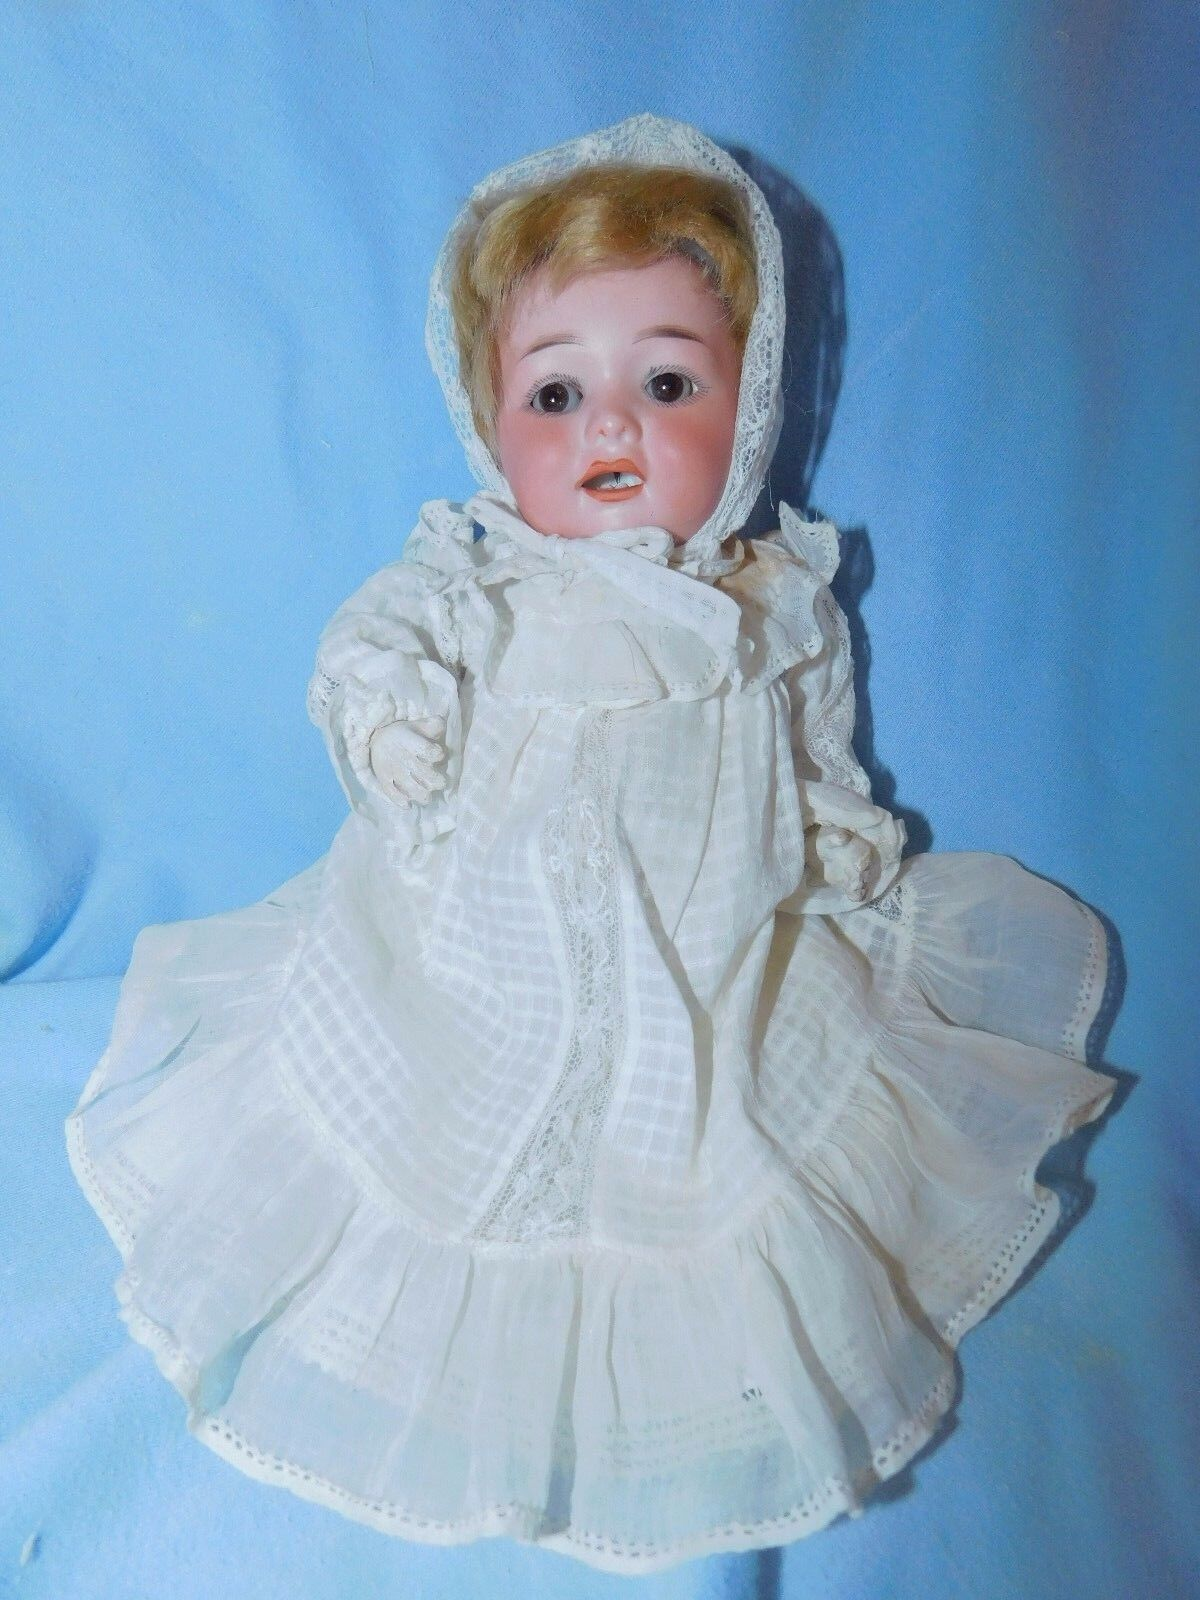 ANTIQUE ARMAND MARSEILLE Borgfeldt 327 baby doll bisque composition ant. clothes